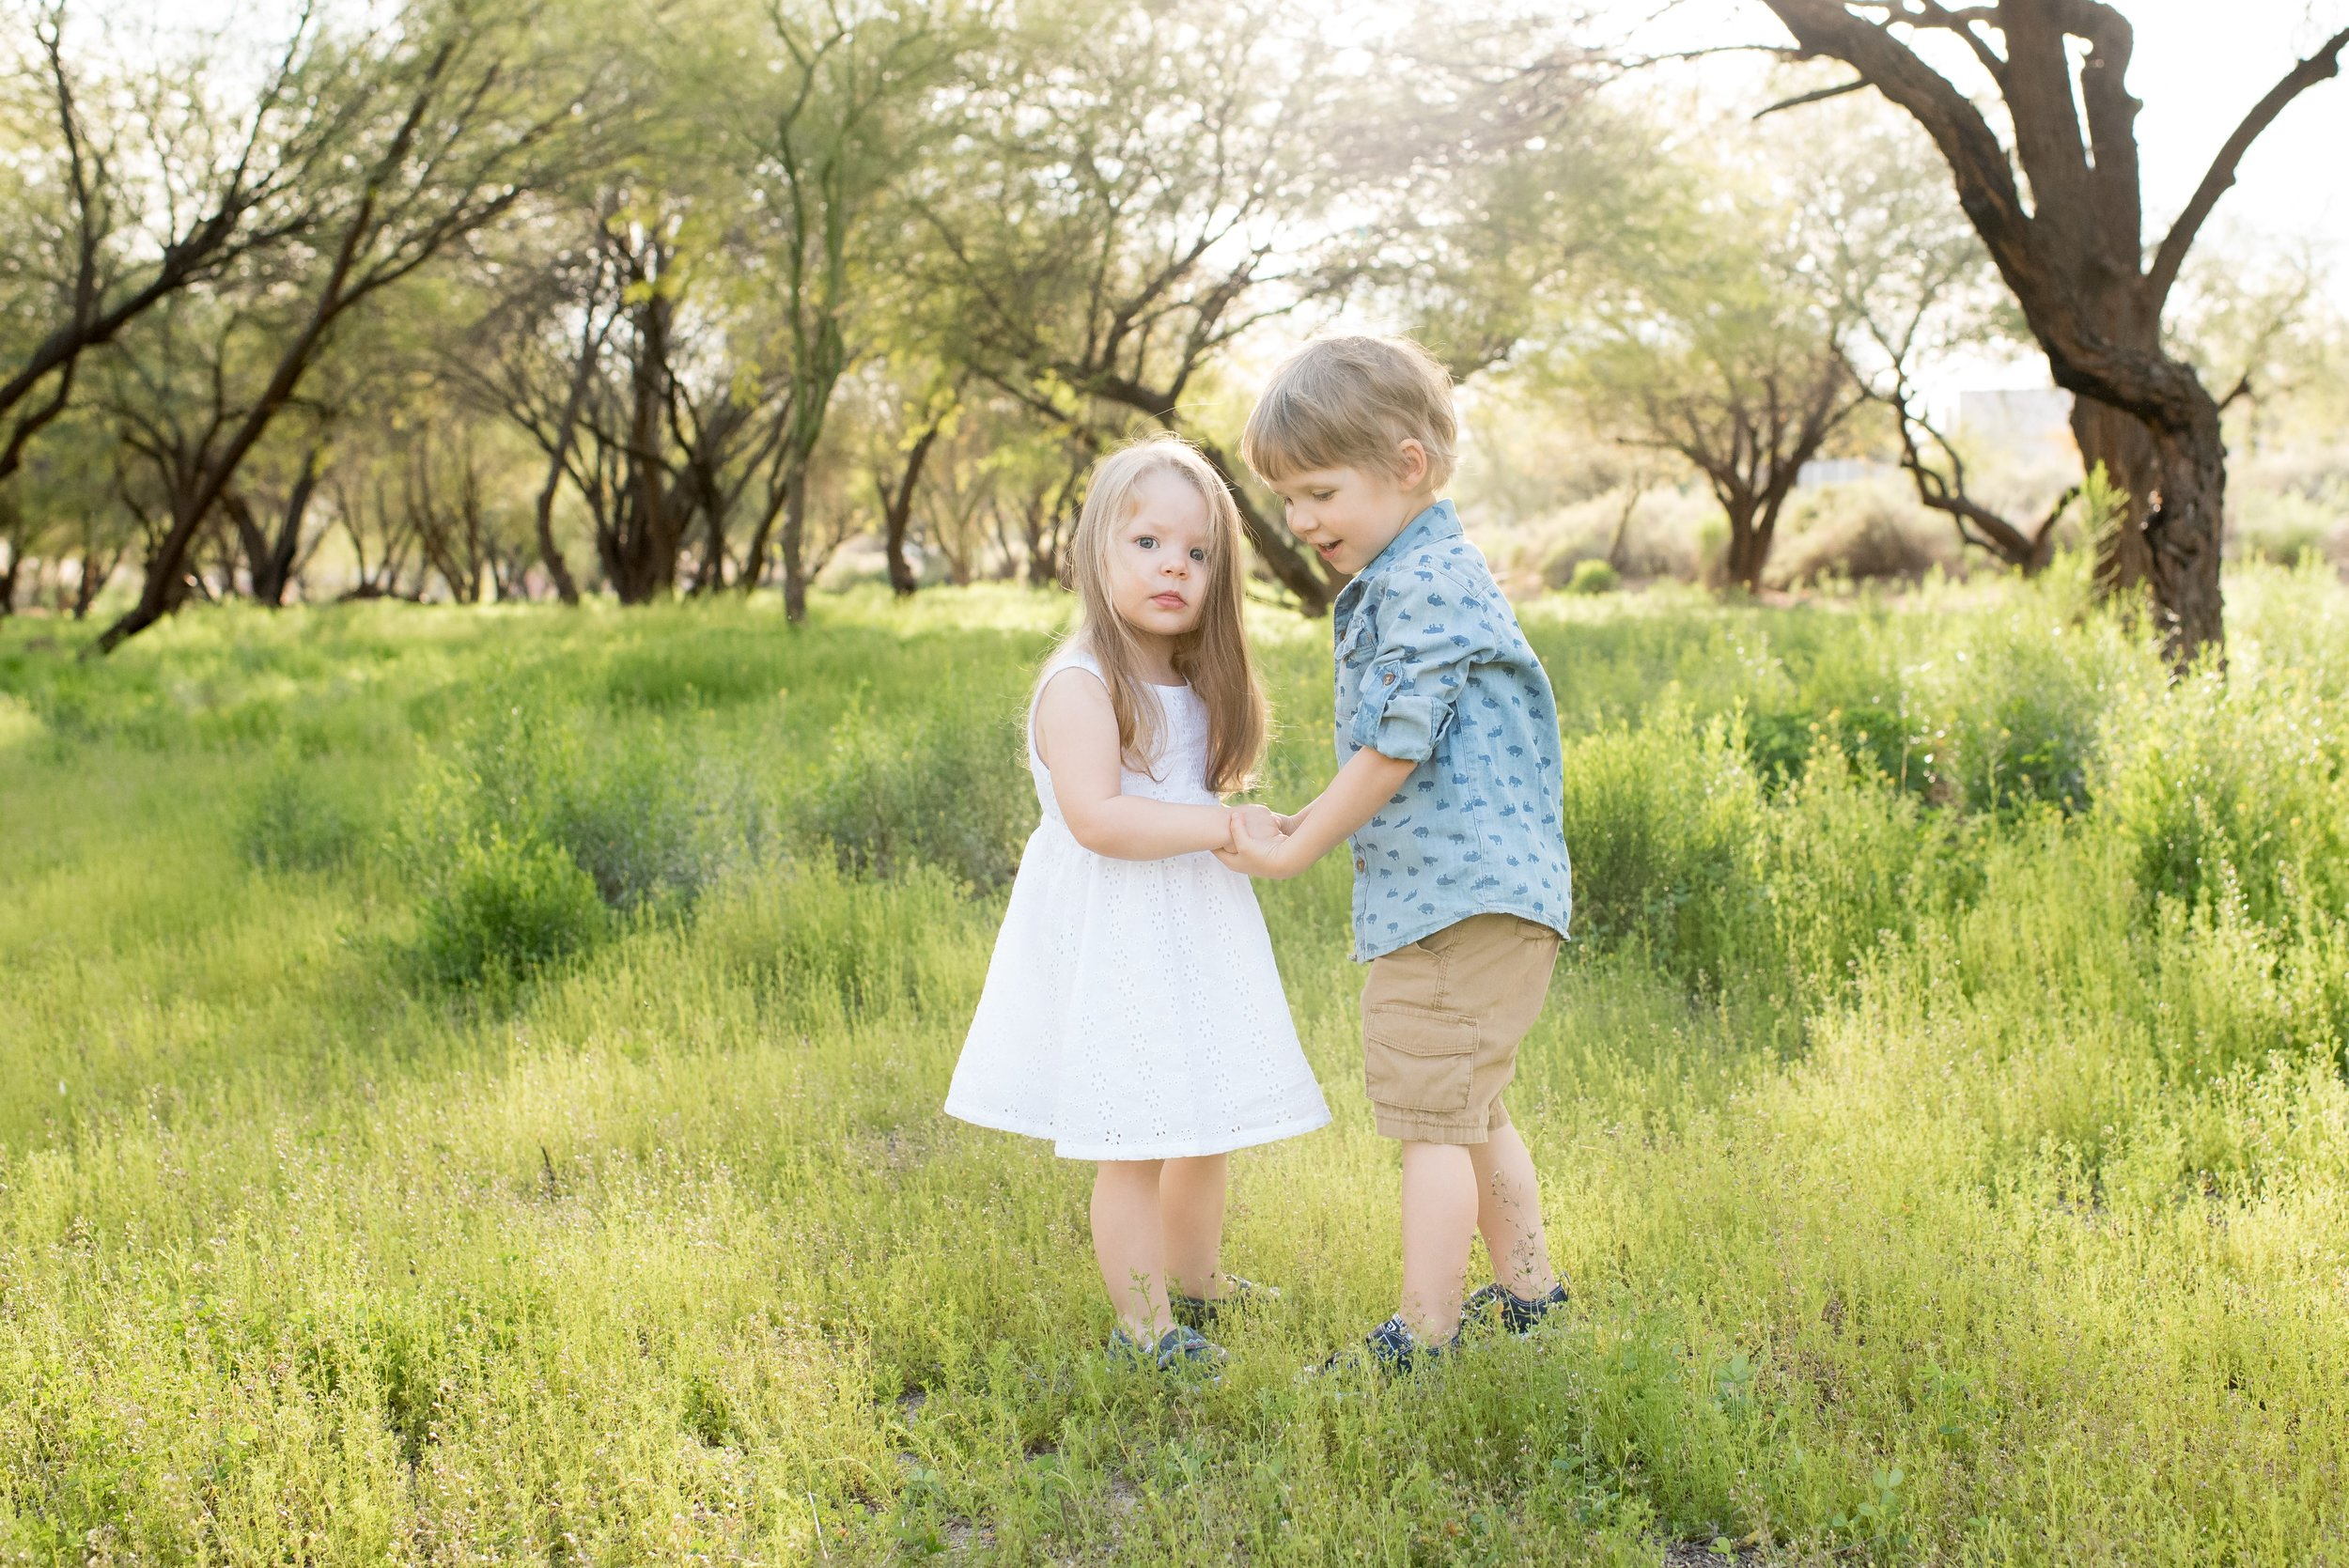 North Phoenix family and child photographer | SweetLife Photography_0110.jpg